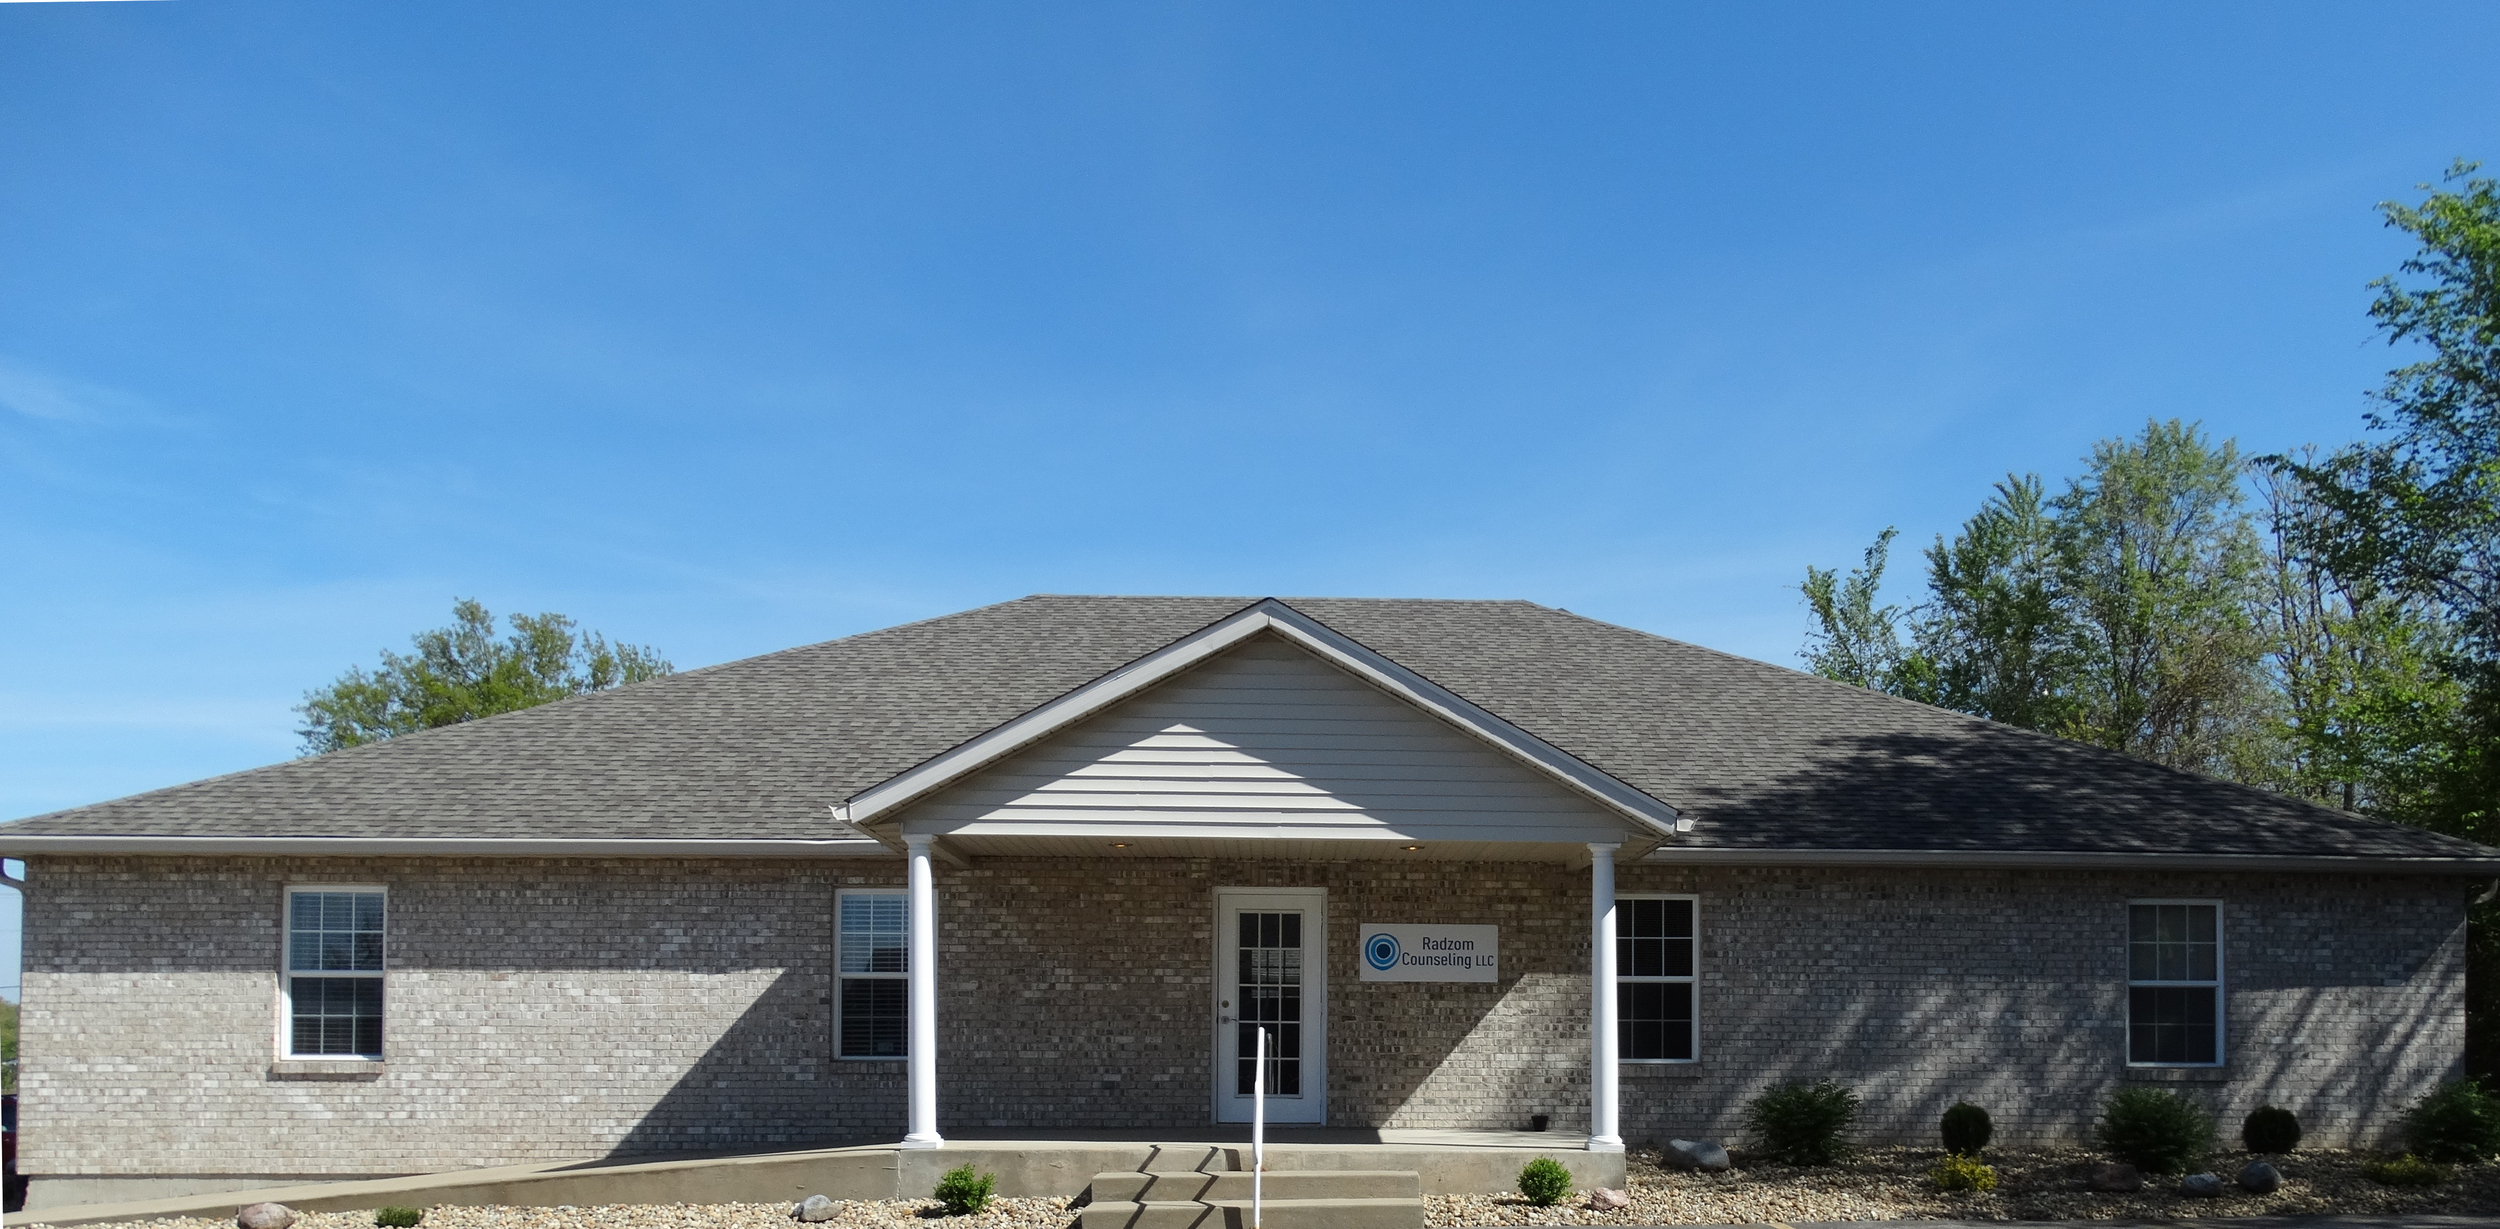 Radzom Counseling Maryville 62062 IL Exterior Building 3